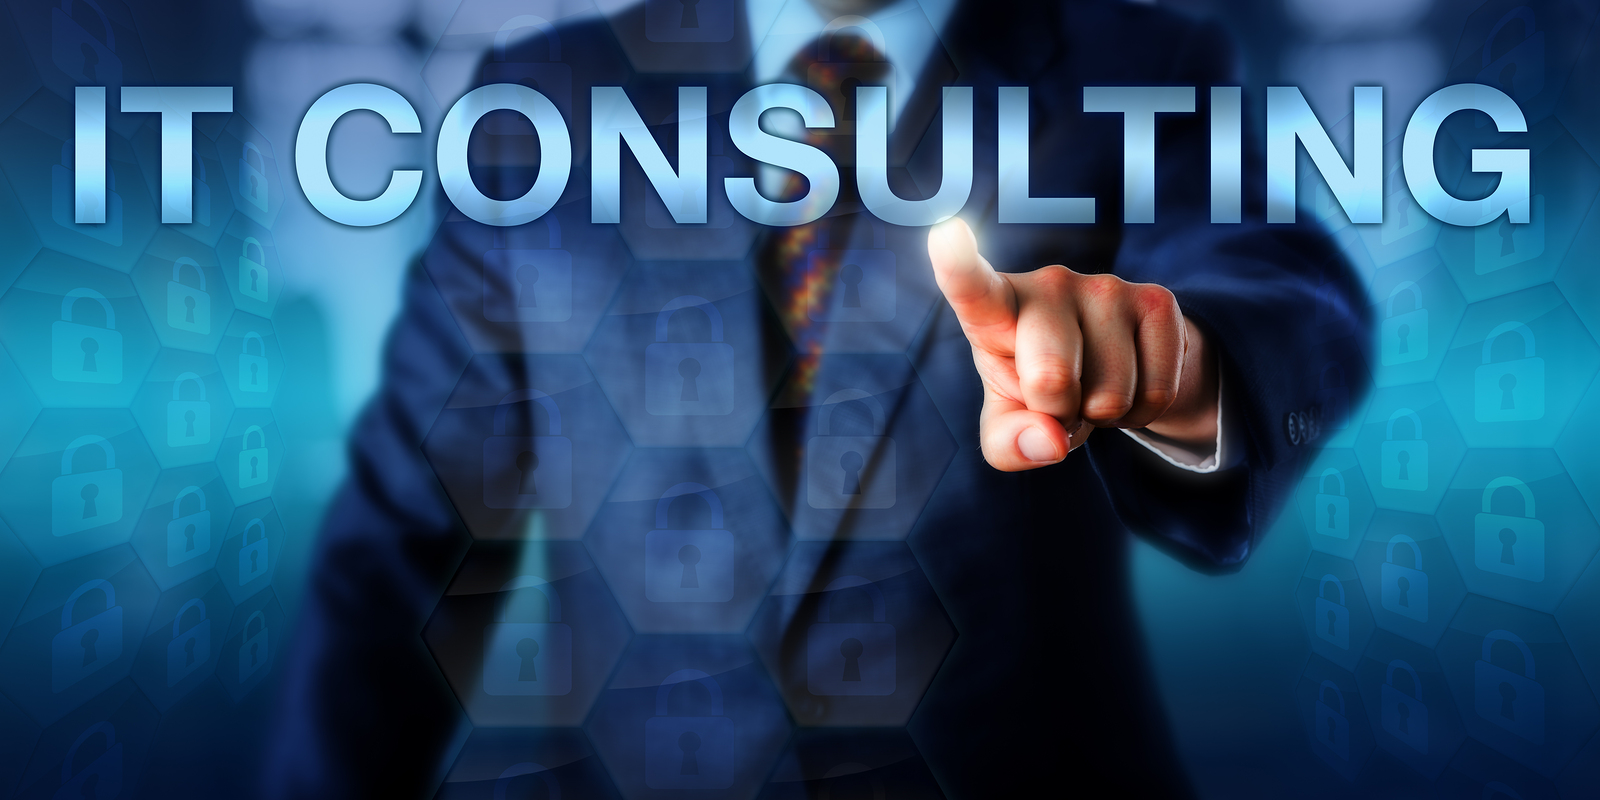 5 Questions to Ask When Considering an IT Consultant